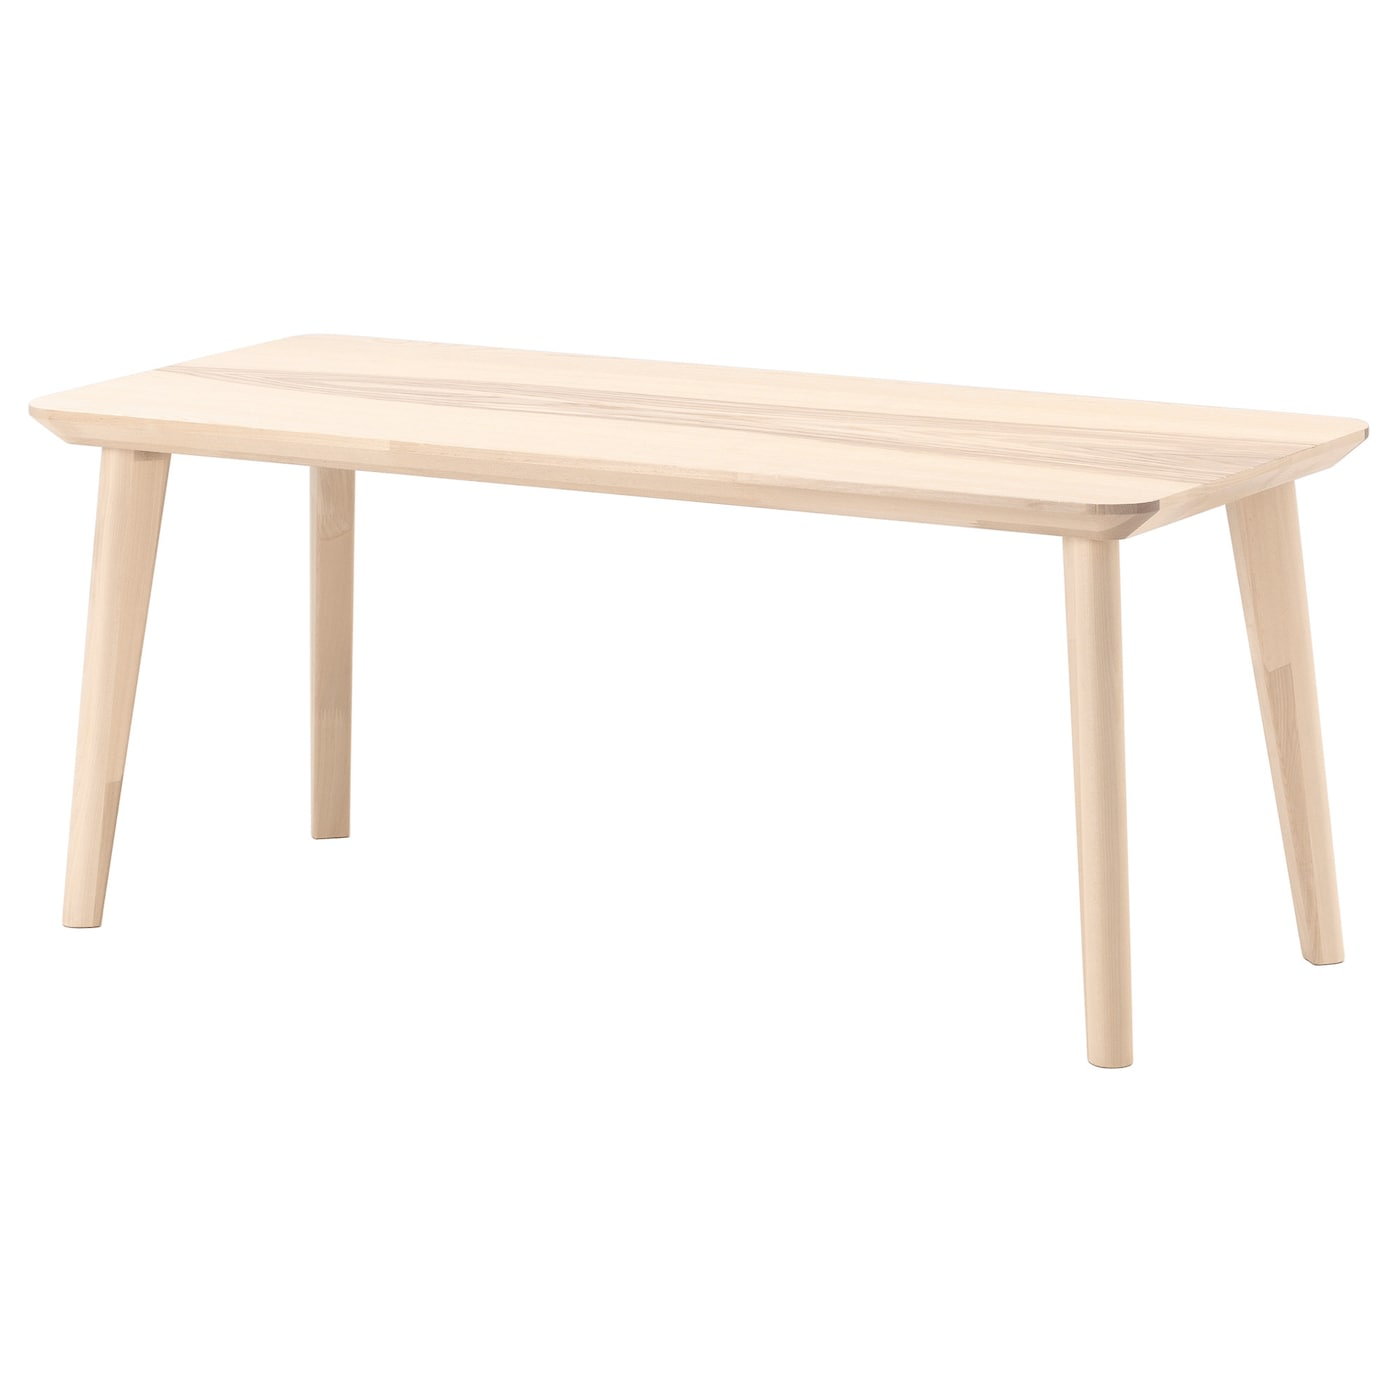 IKEA LISABO coffee table Easy to assemble as each leg only has one fitting.